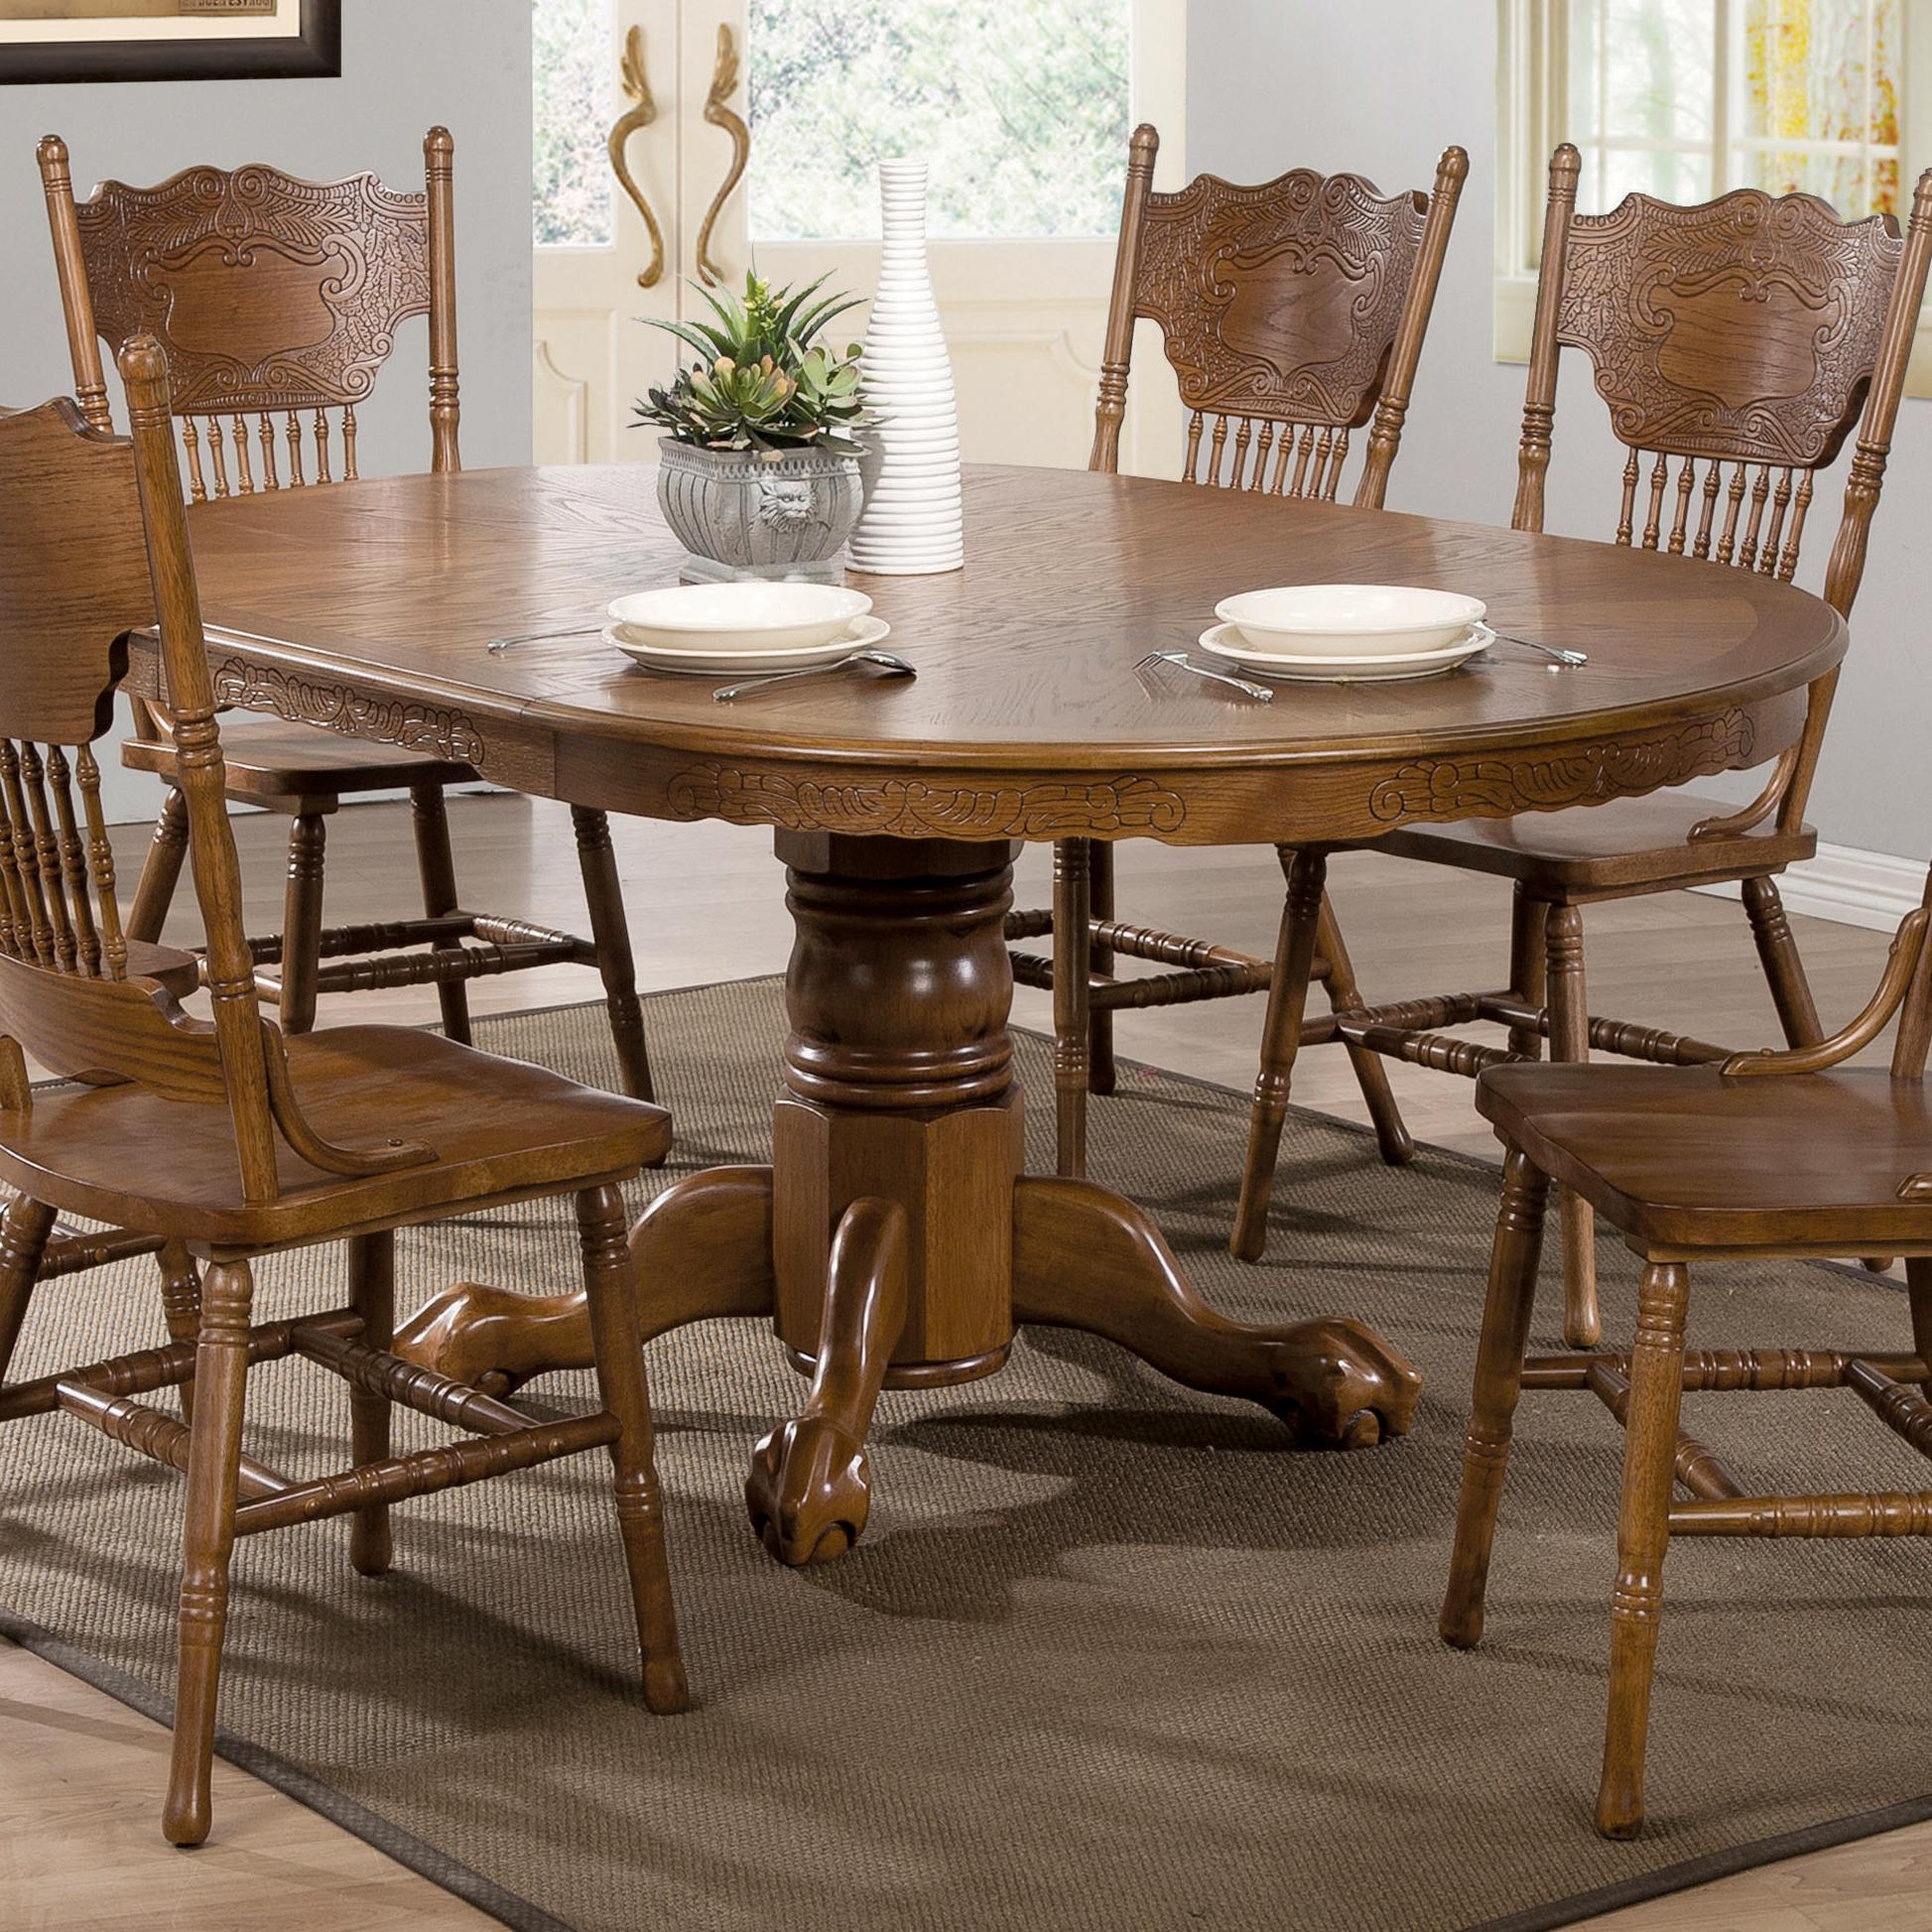 Coaster brooks 104270 oak finish round oval dining table for Fancy round dining table